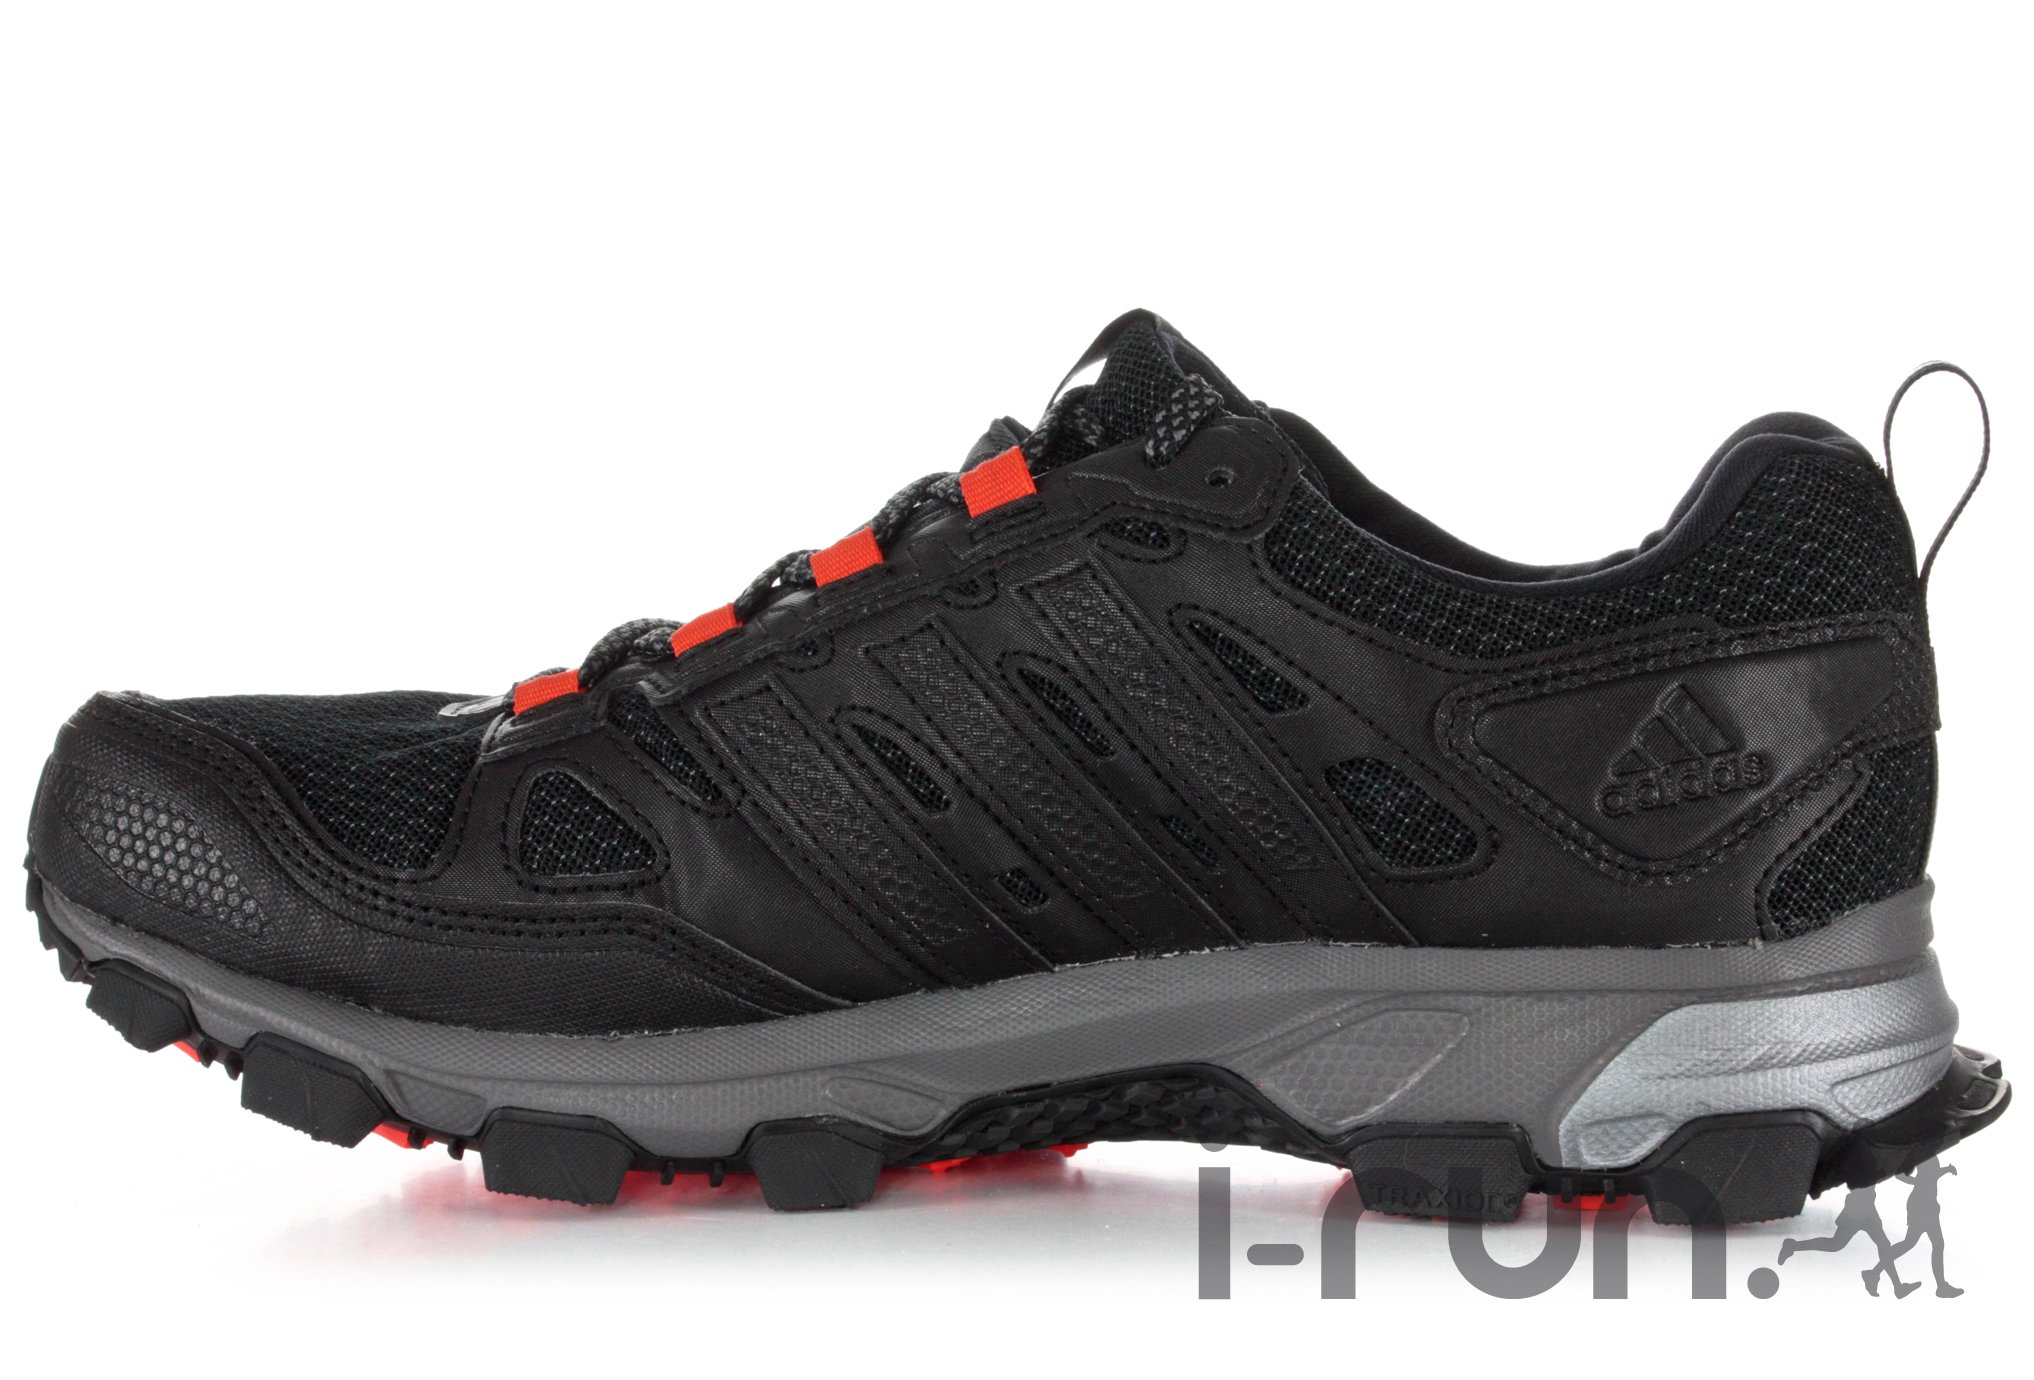 adidas response trail,adidas response trail boost m chaussures homme